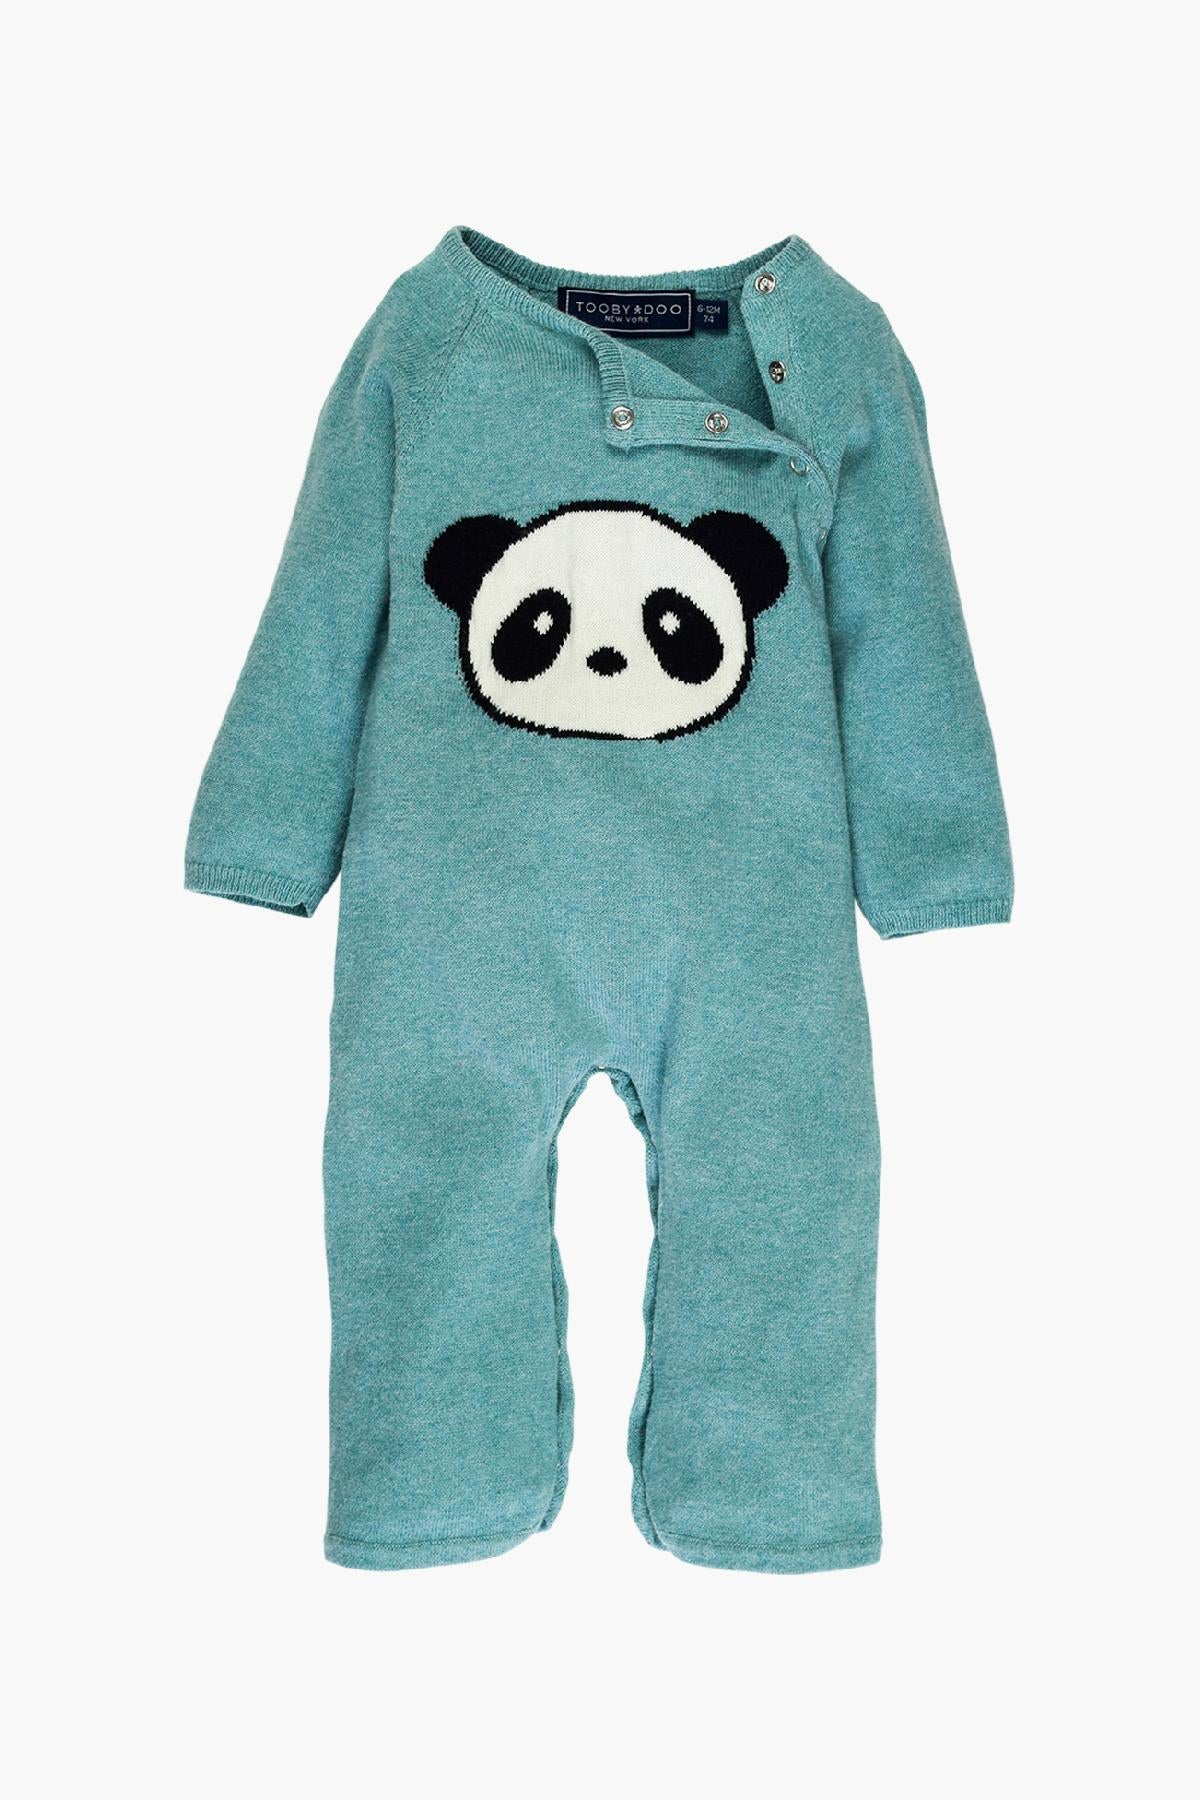 Toobydoo Cashmere Panda Jumpsuit - Green